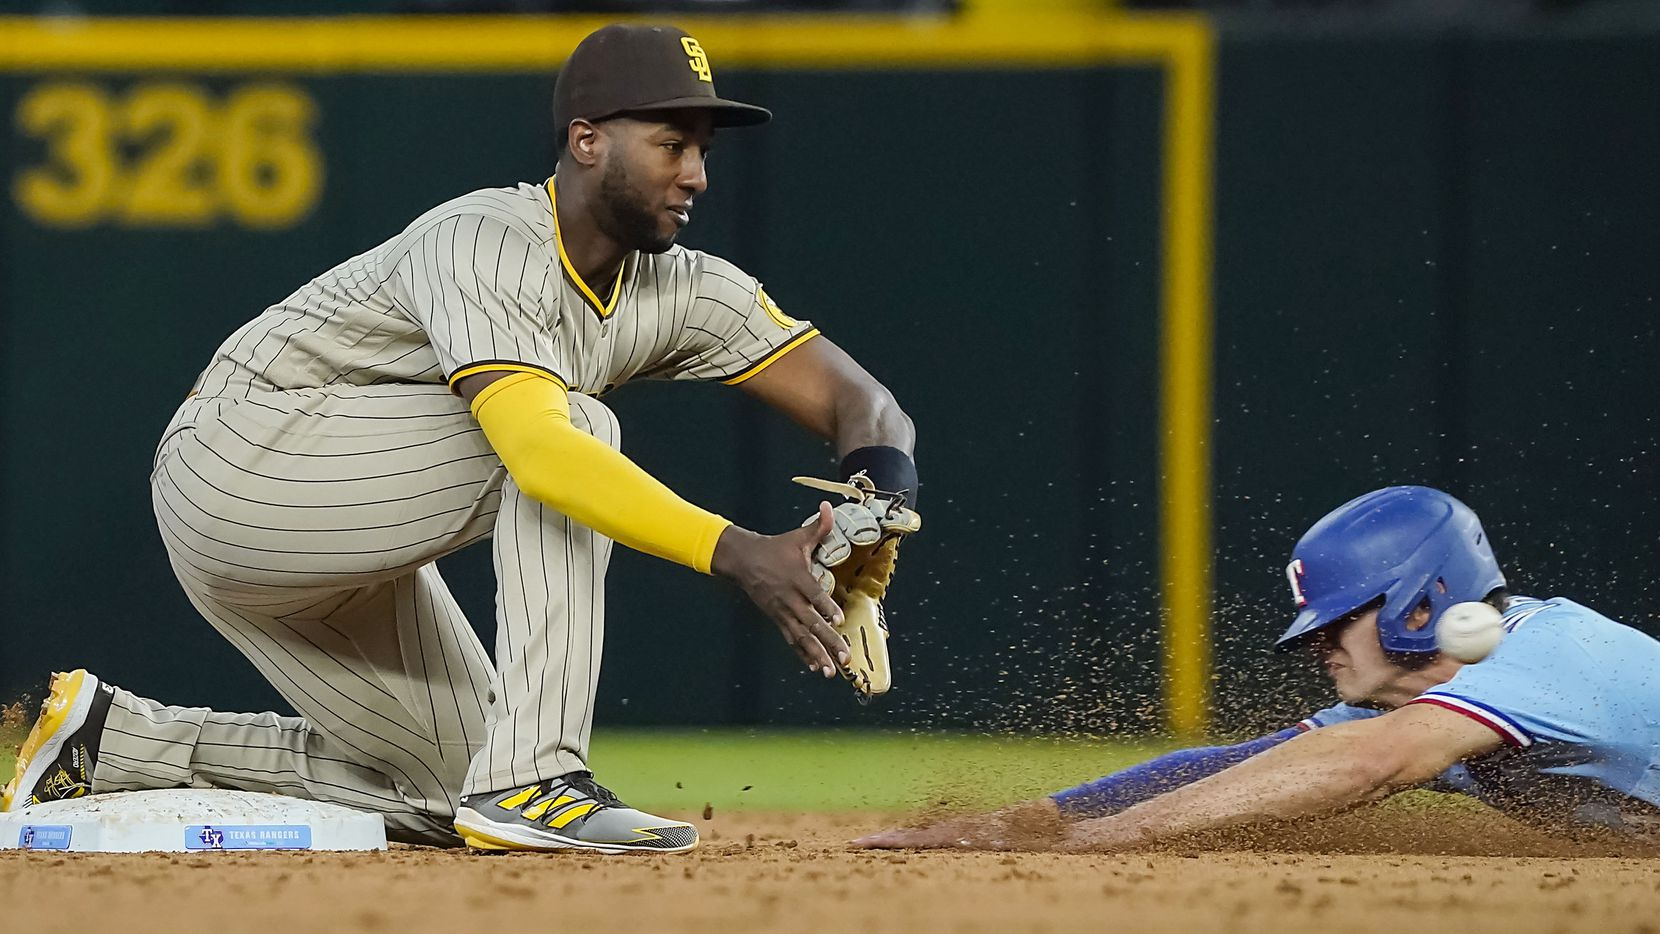 Texas Rangers outfielder Eli White is caught stealing as San Diego Padres second baseman Jurickson Profar takes the throw during the eighth inning at Globe Life Field on Sunday, April 11, 2021. (Smiley N. Pool/The Dallas Morning News)